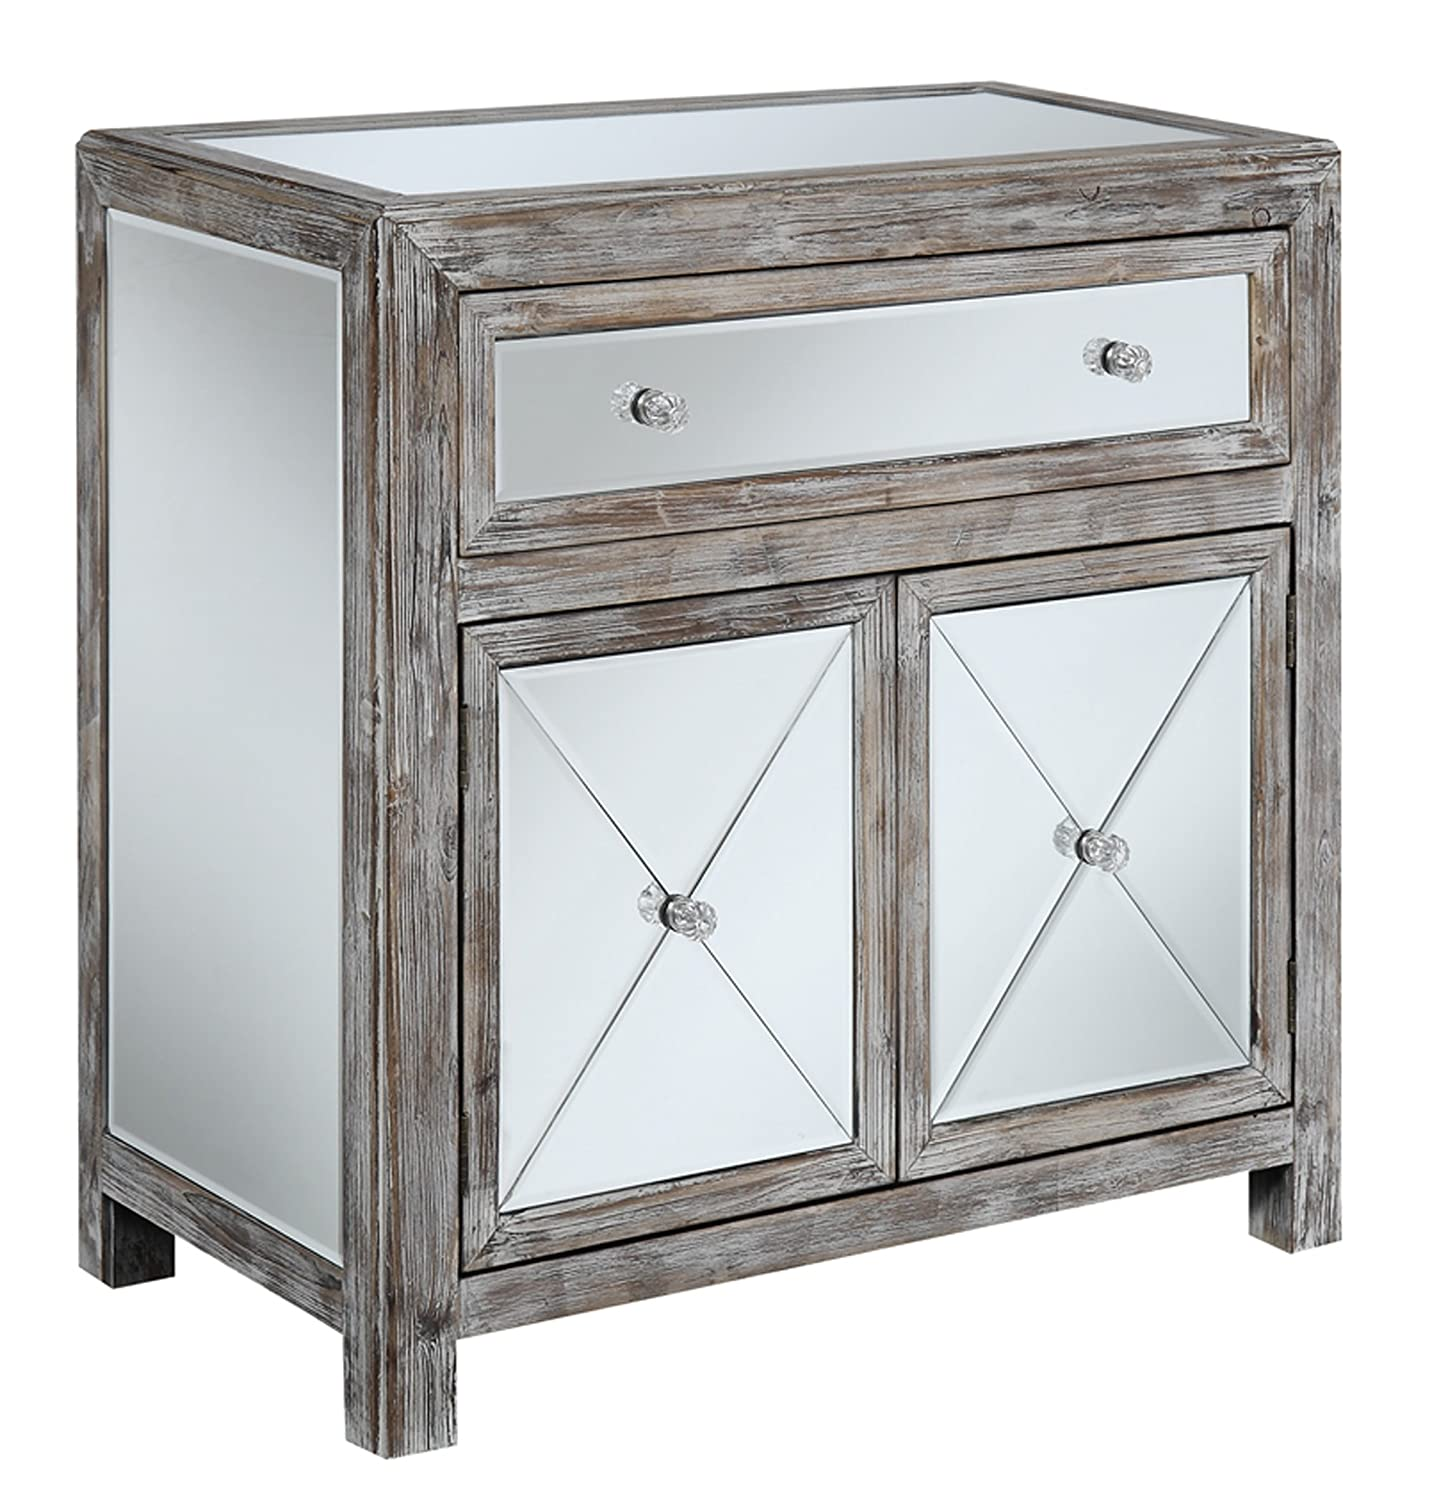 Amazon.com: Convenience Concepts Gold Coast Collection Vineyard Mirrored  Cabinet, Weathered White/Mirror: Kitchen & Dining